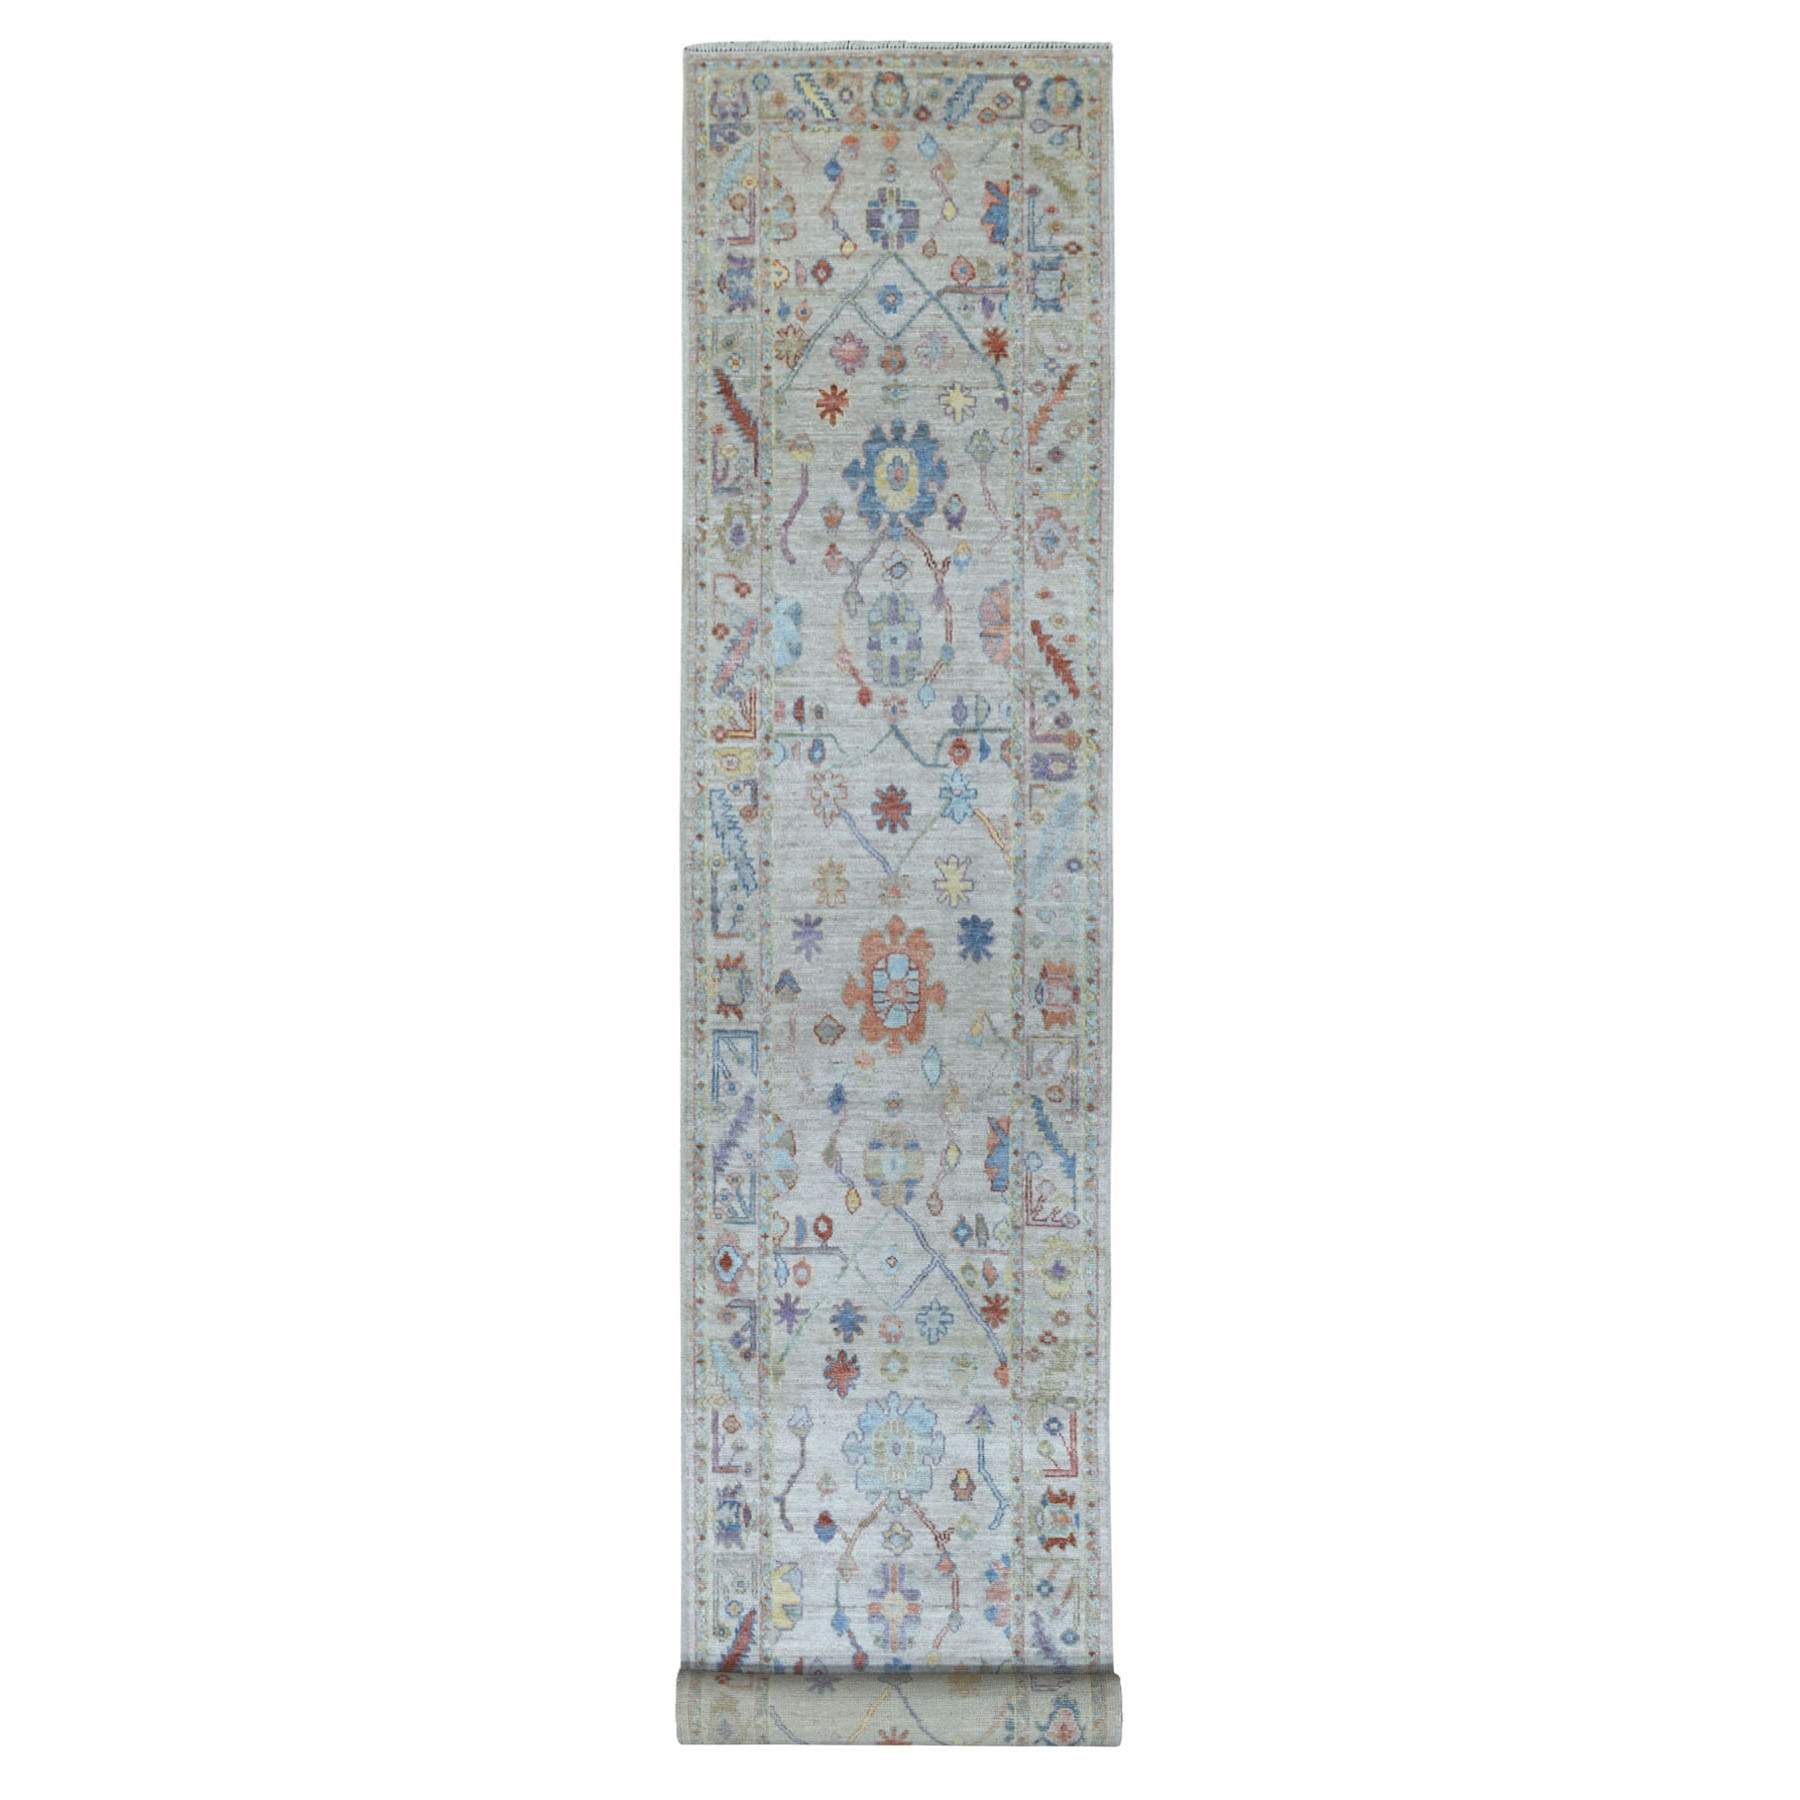 3'X19' Ivory Angora Oushak With Soft Velvety Wool Hand Knotted Xl Runner Oriental Rug moaede7c